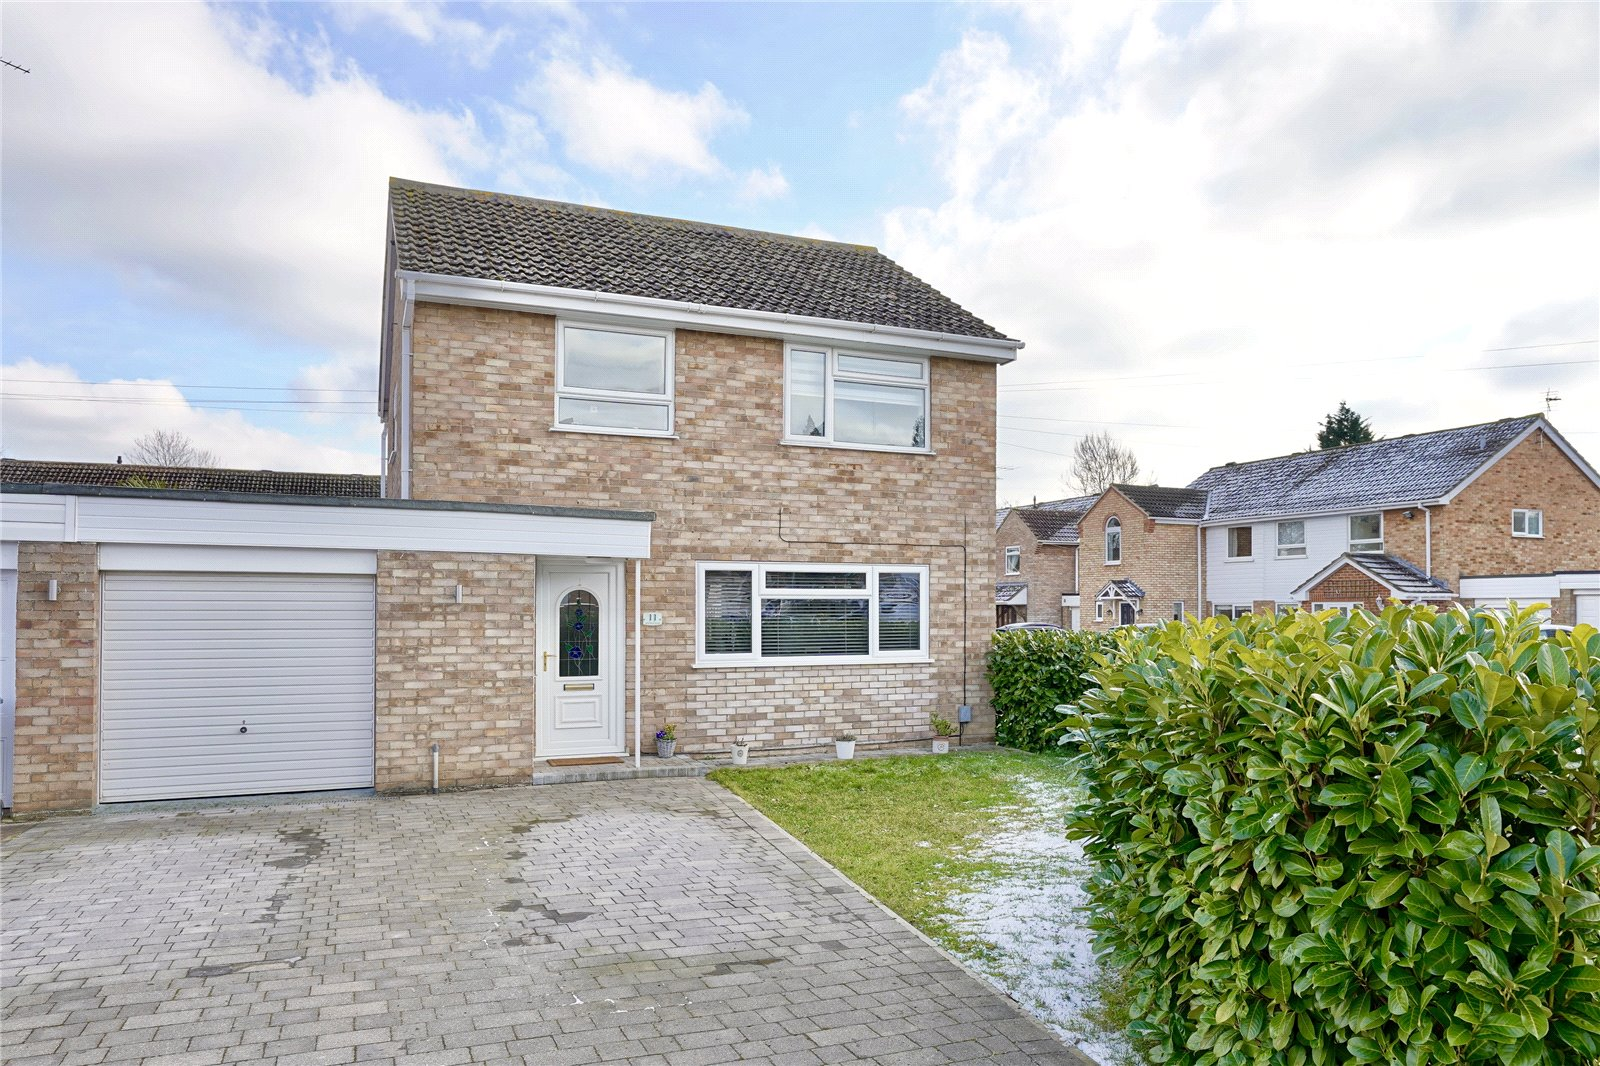 3 bed house for sale in Warwick Court, Eaton Socon  - Property Image 1